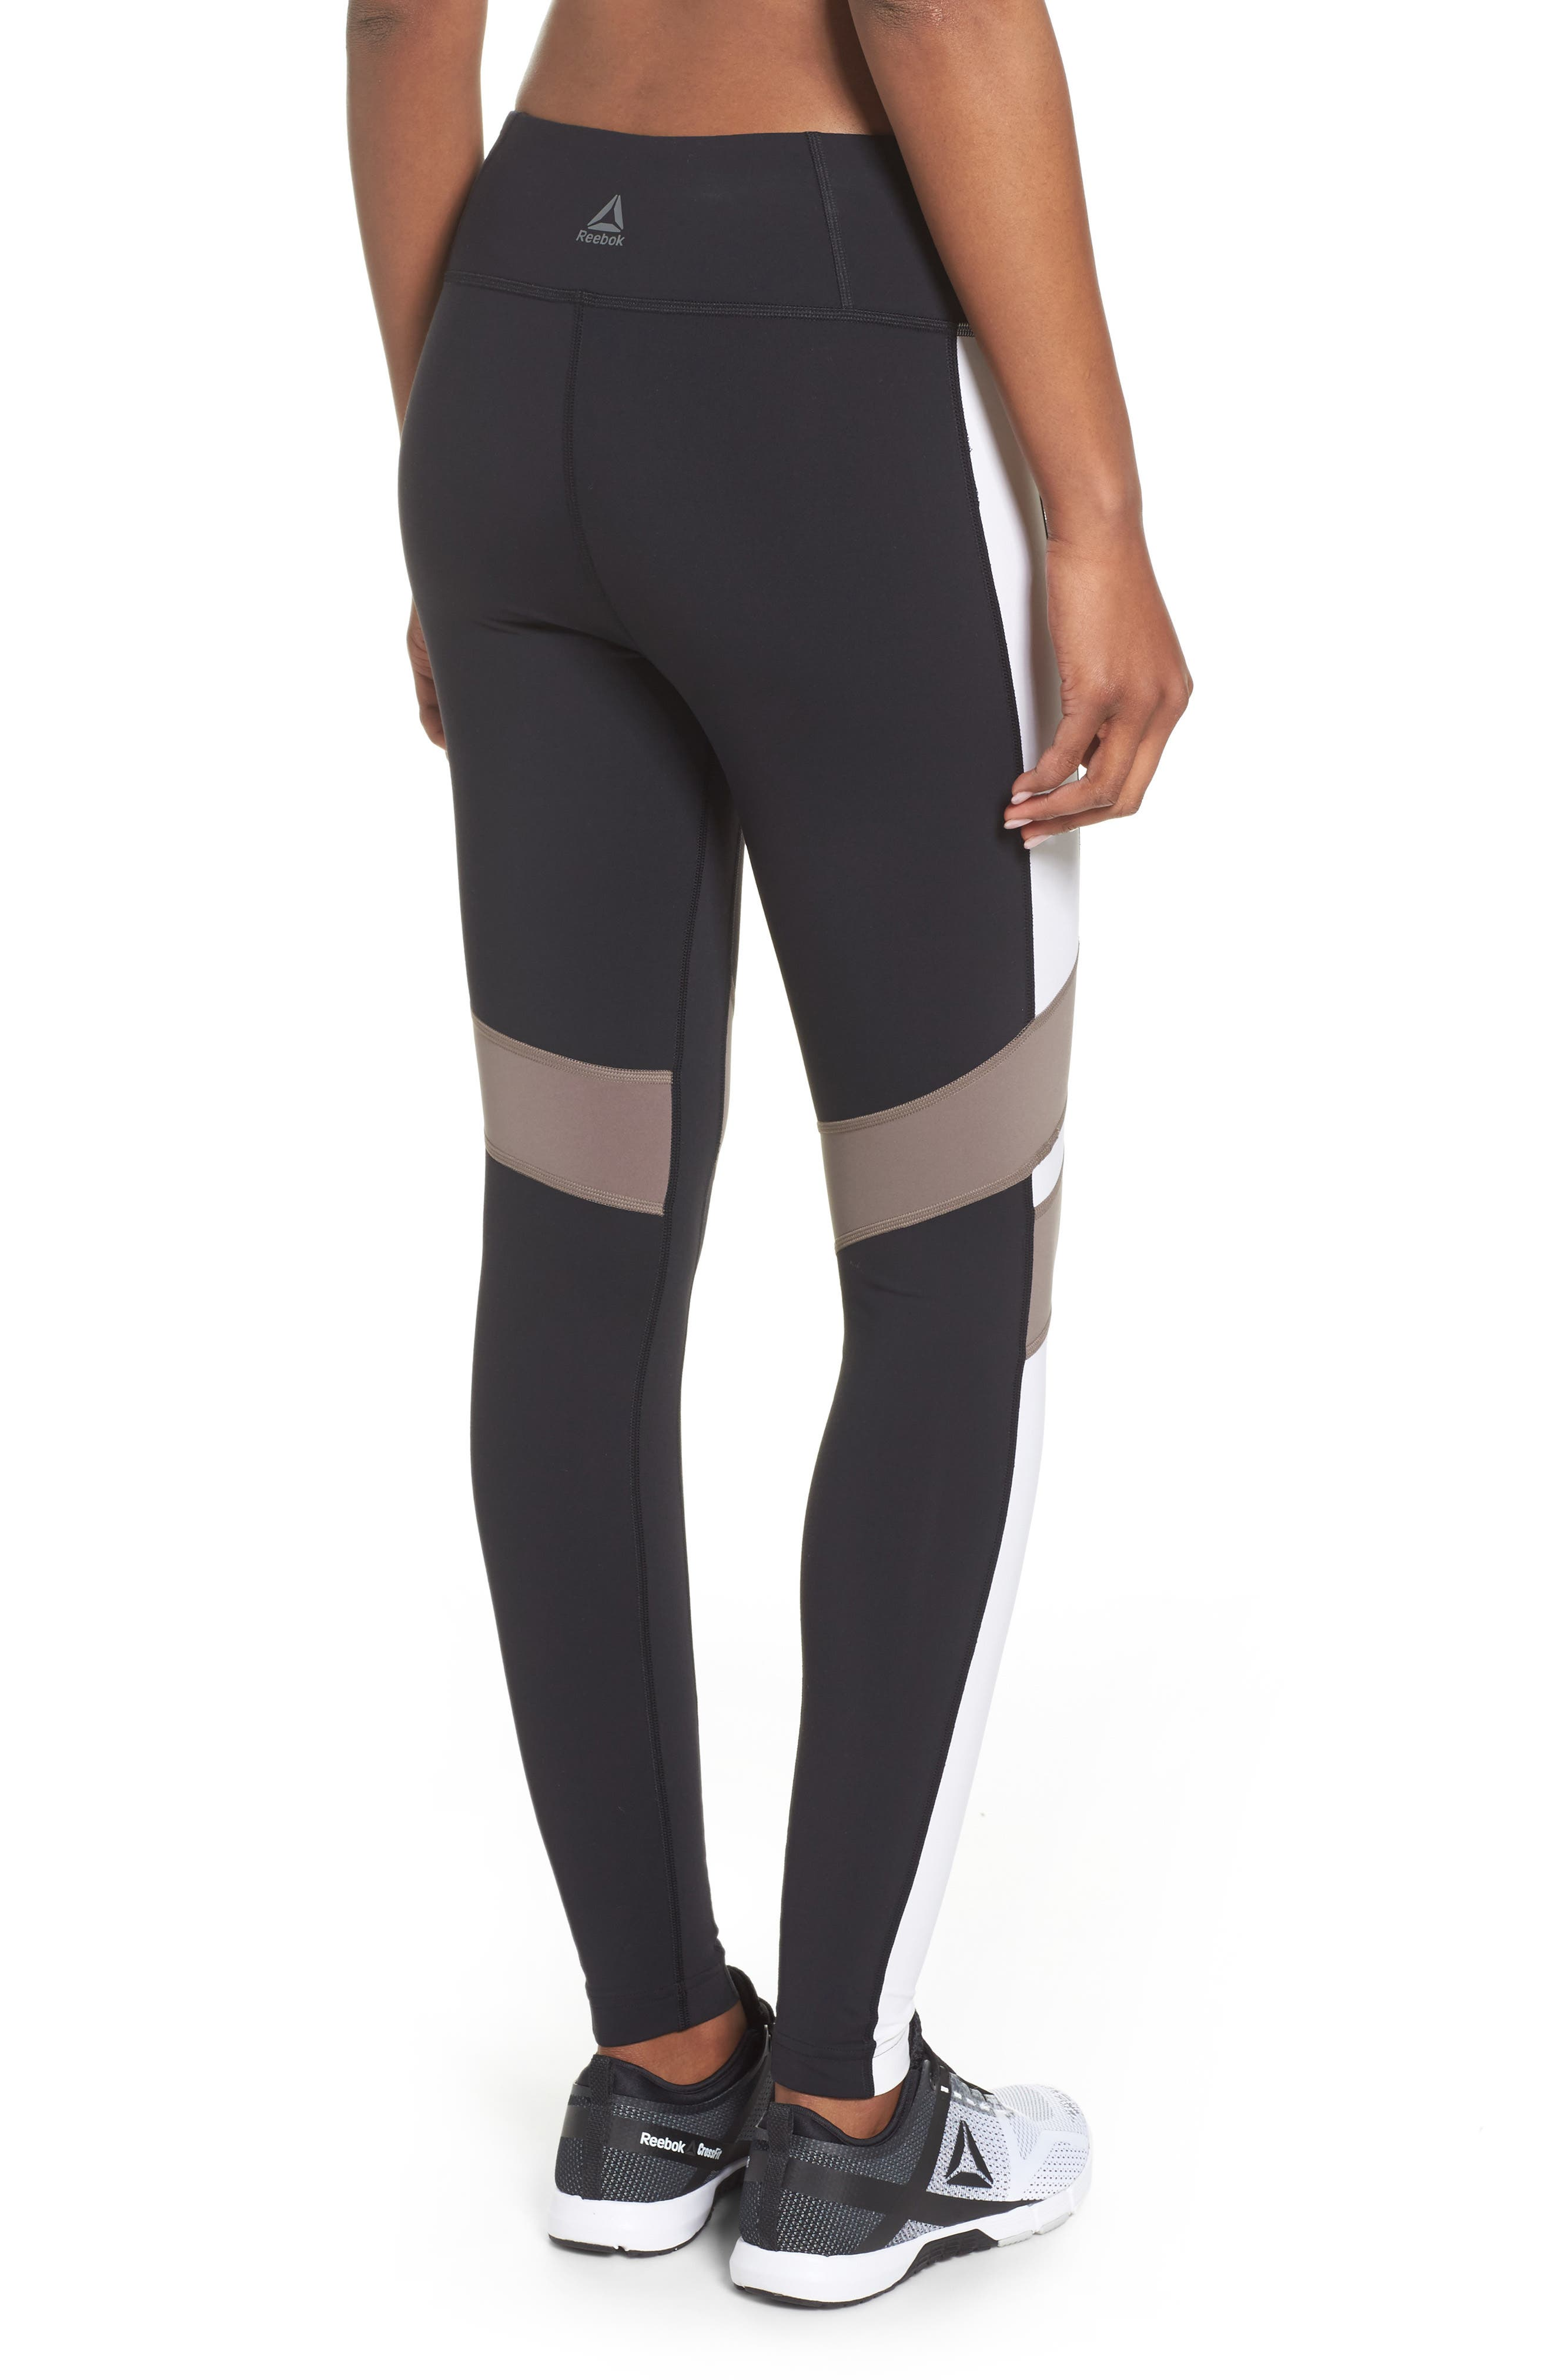 Reebox Lux Tights,                             Alternate thumbnail 2, color,                             Black